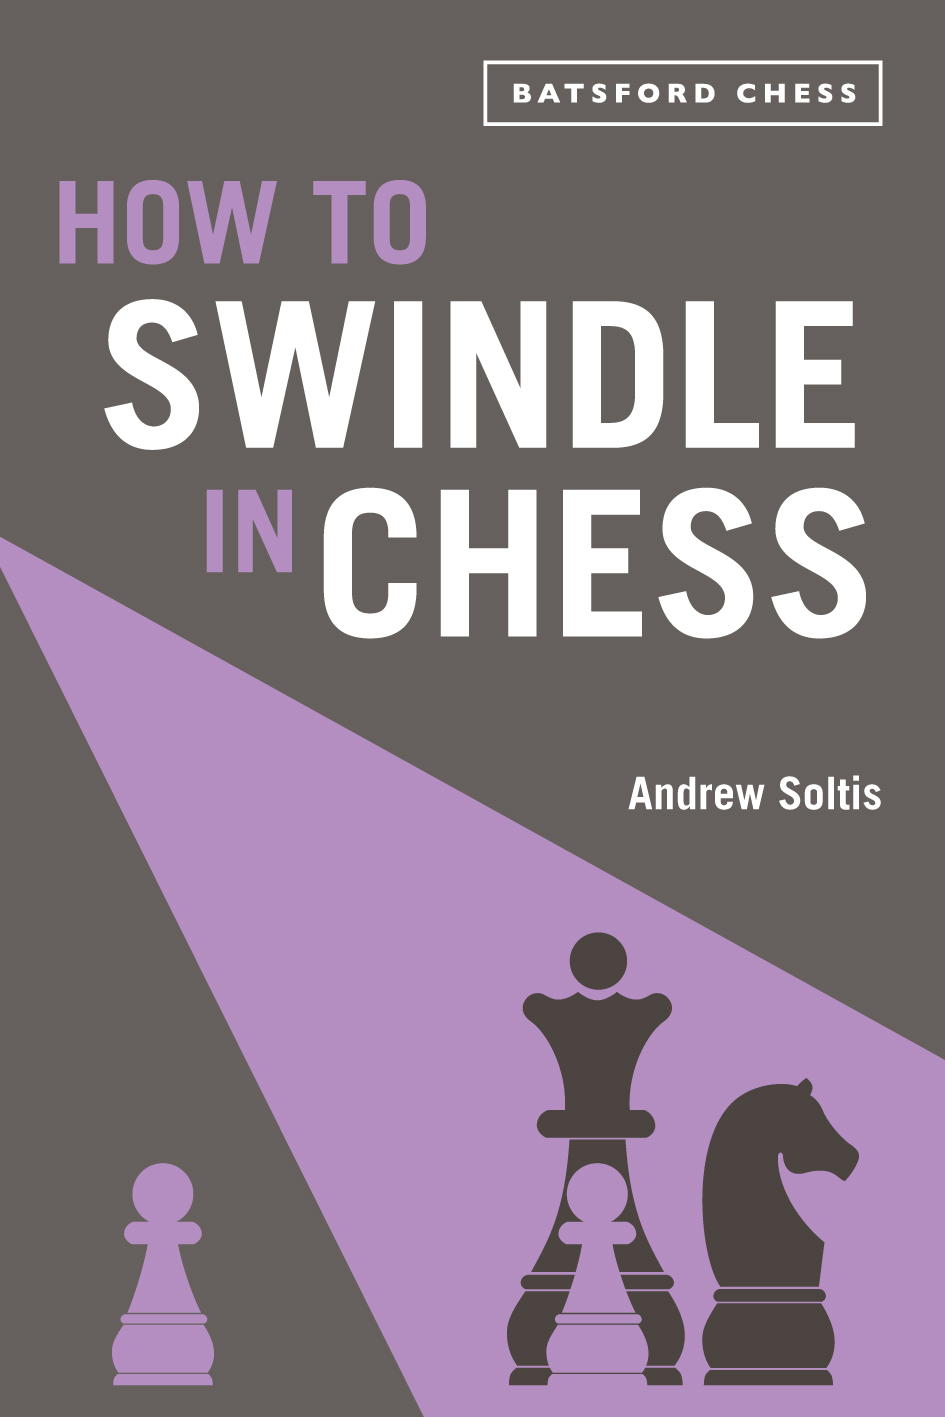 How to Swindle in Chess snatch victory from a losing position